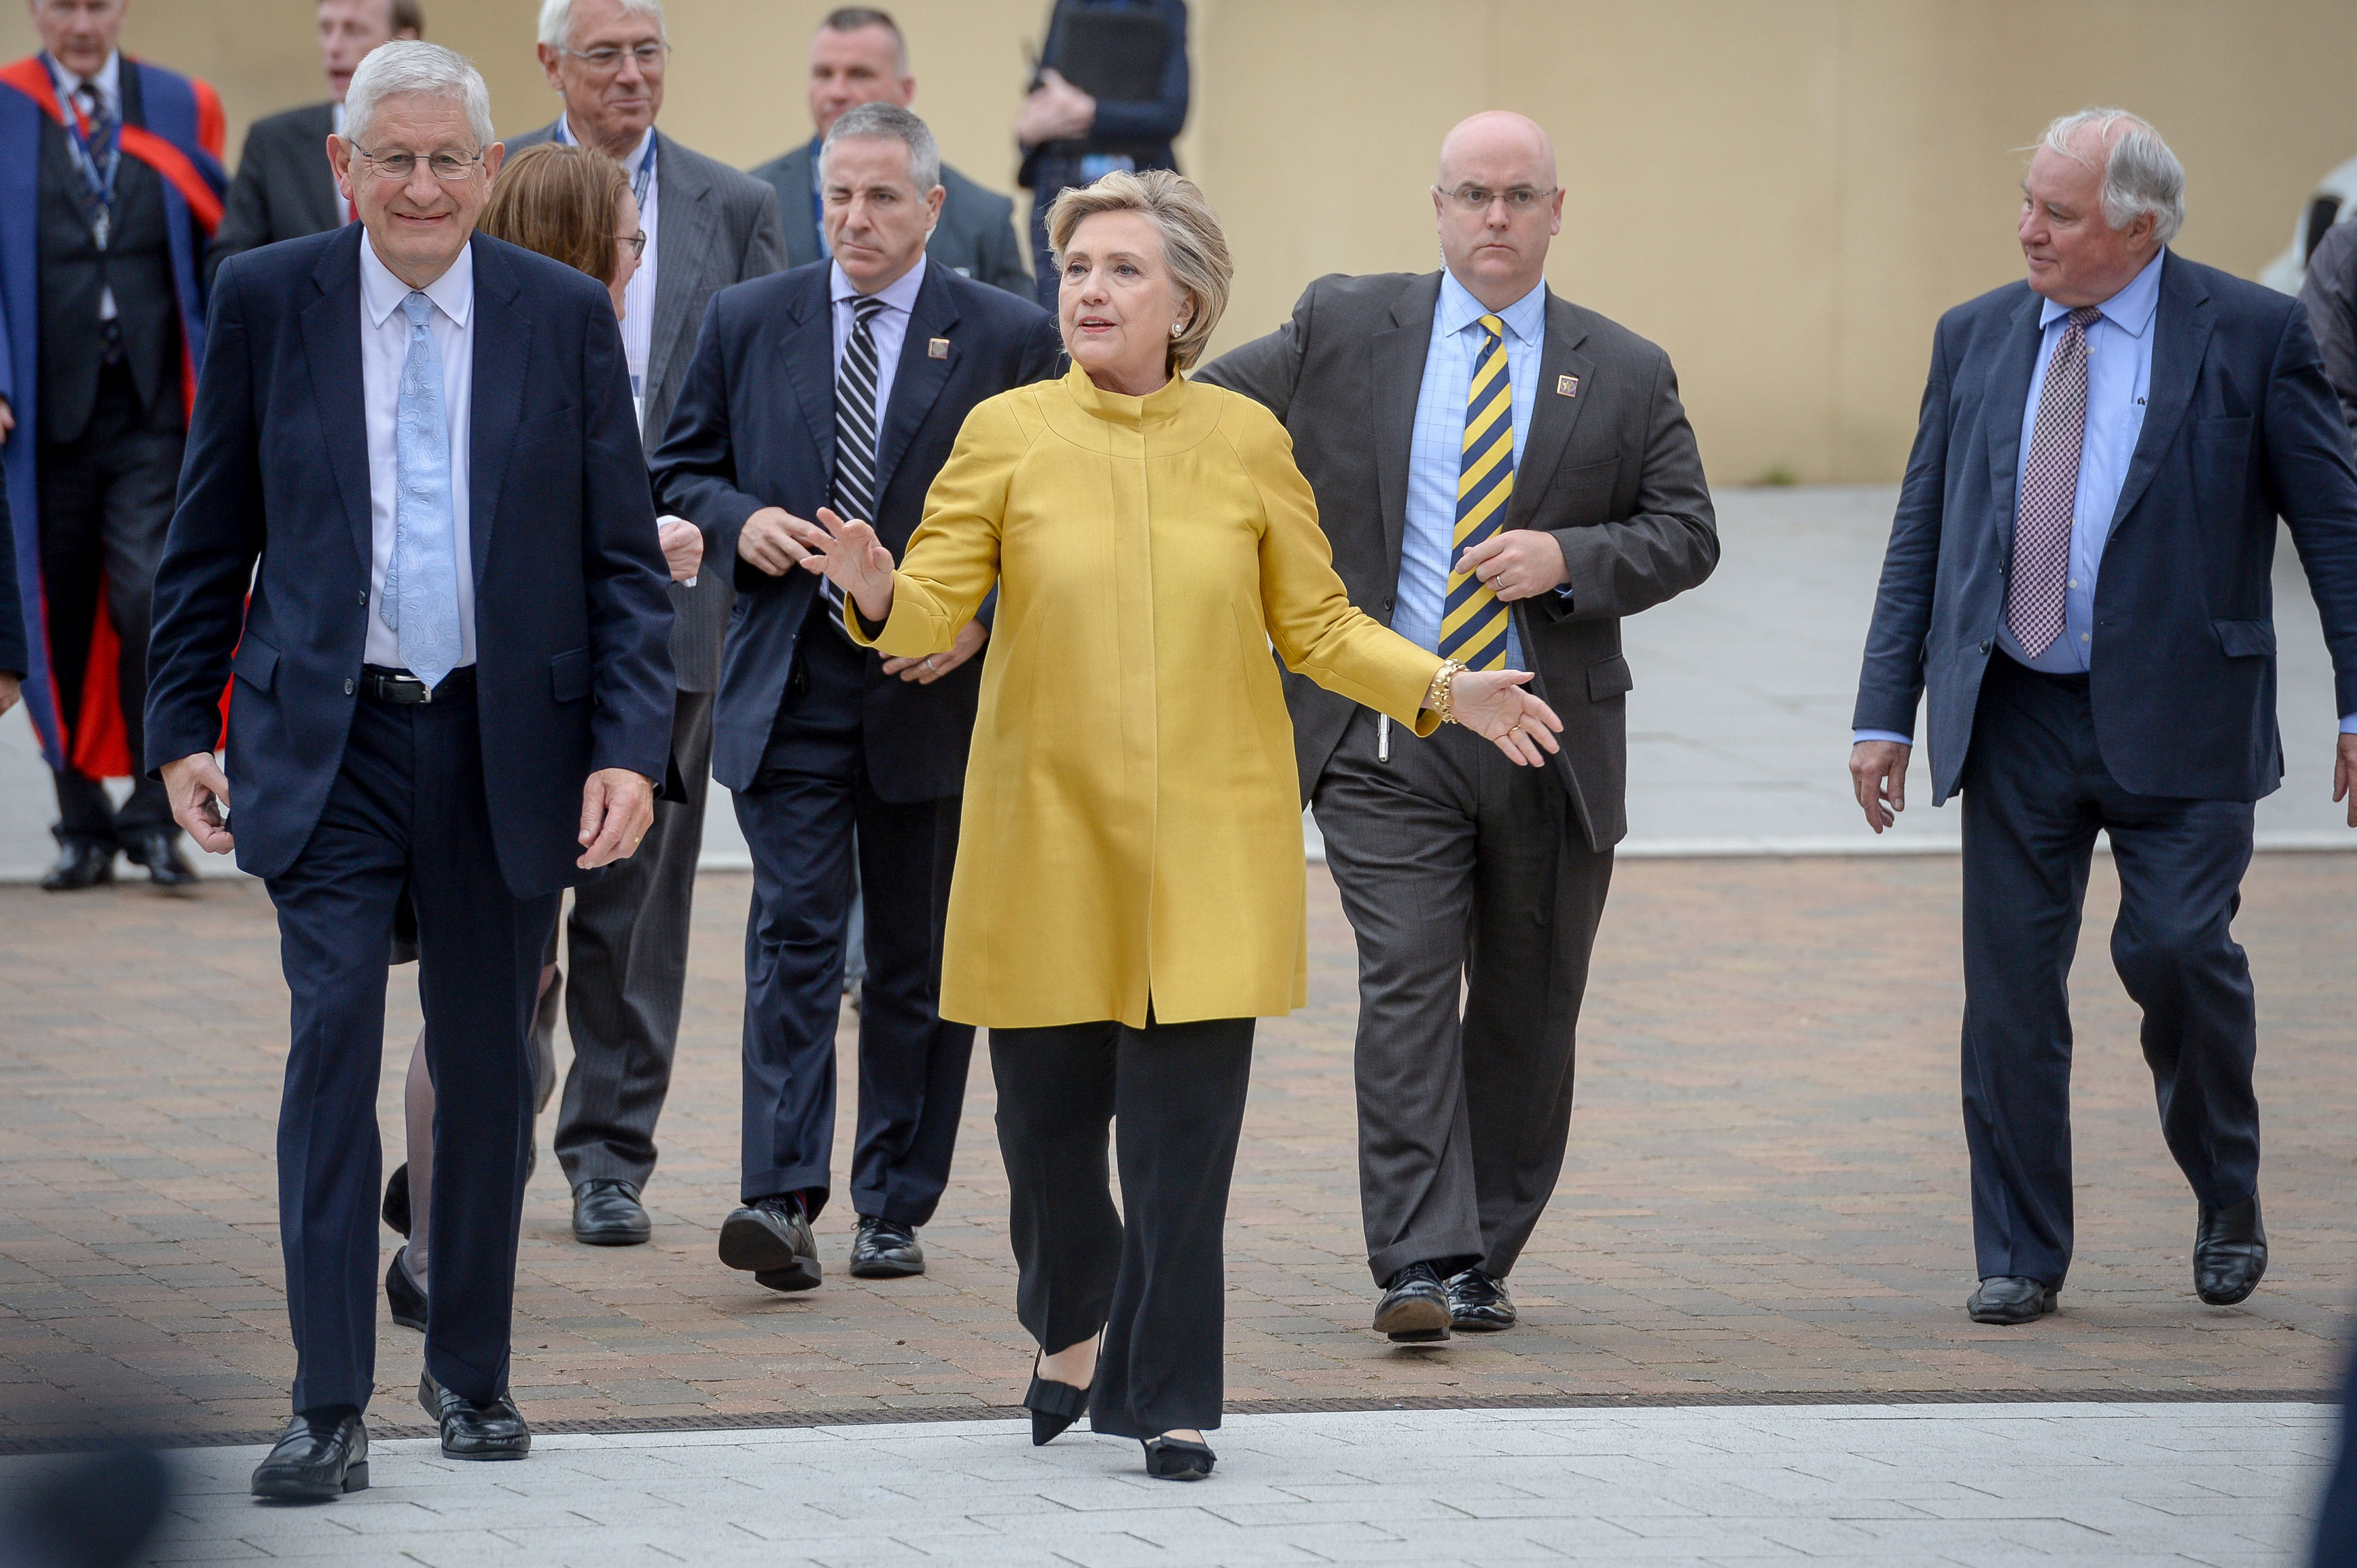 Hillary Clinton walking